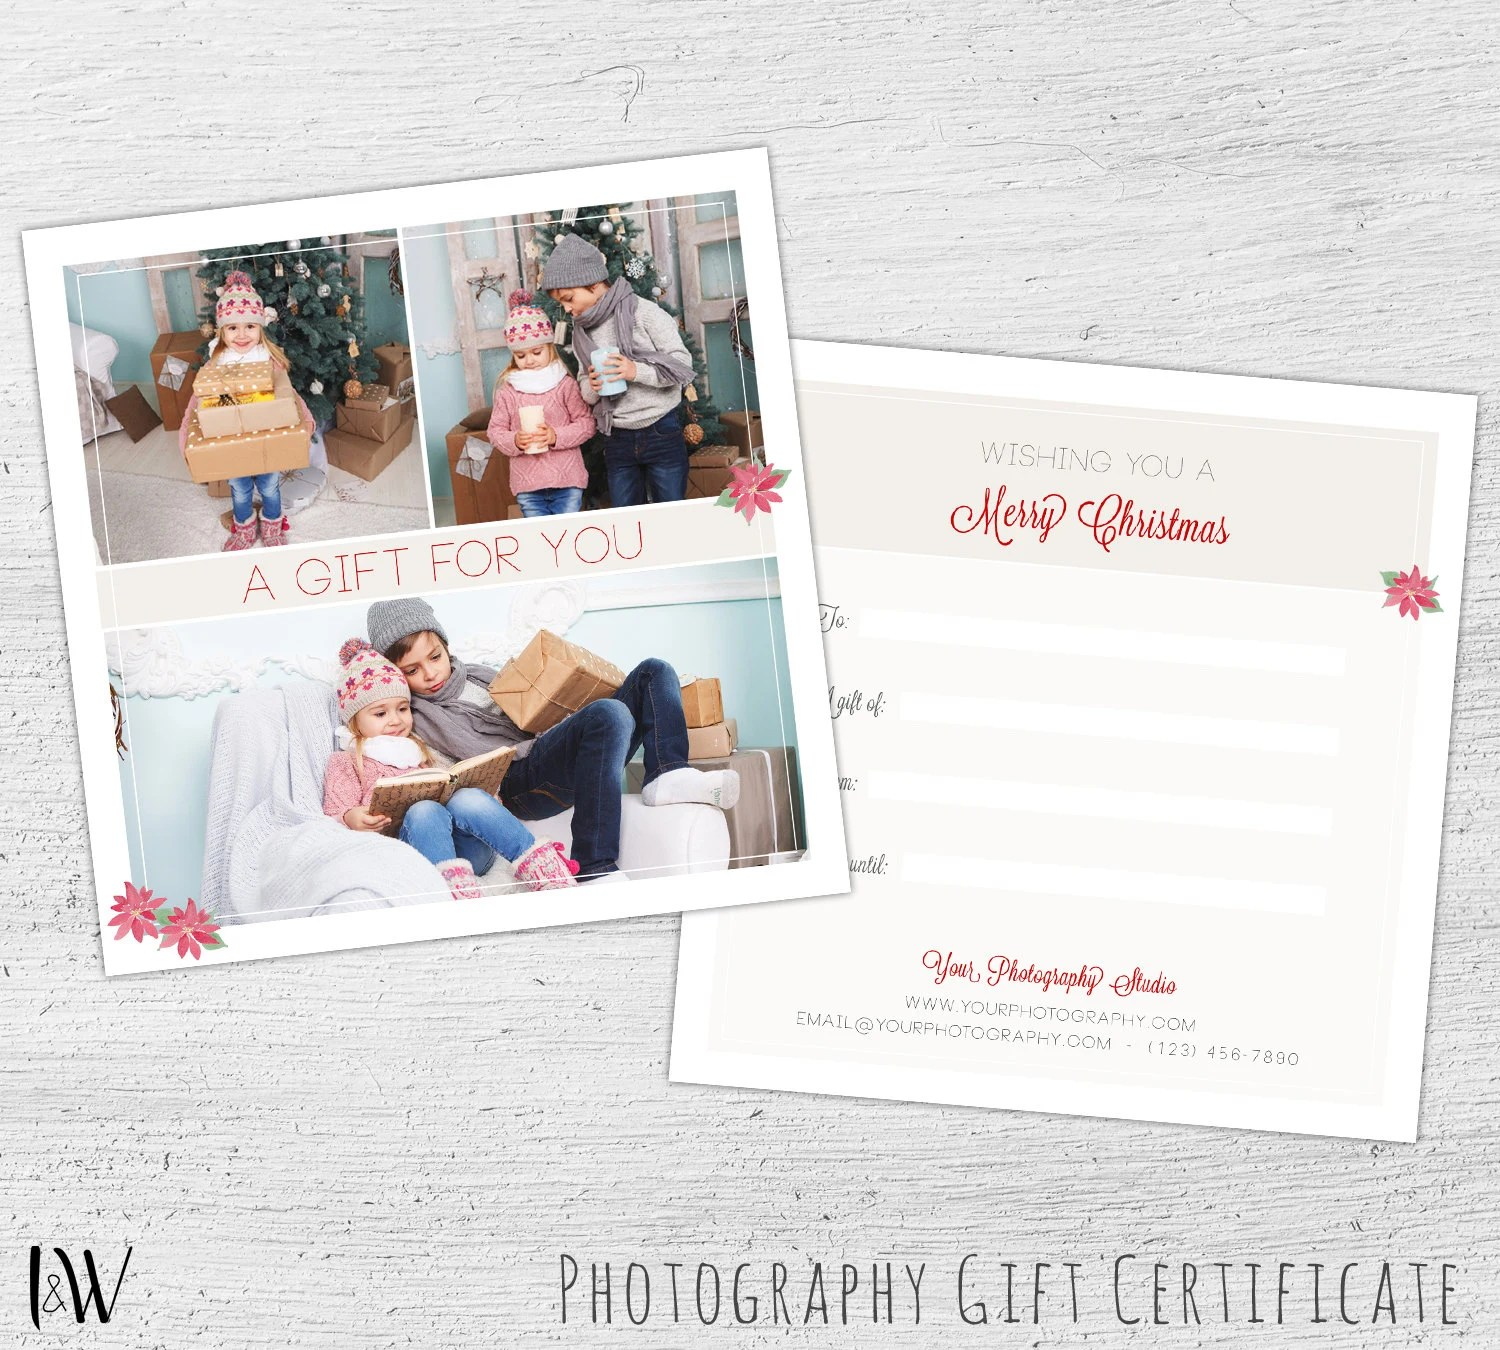 Christmas Gift Certificate, Photoshop Template, Photography Gift